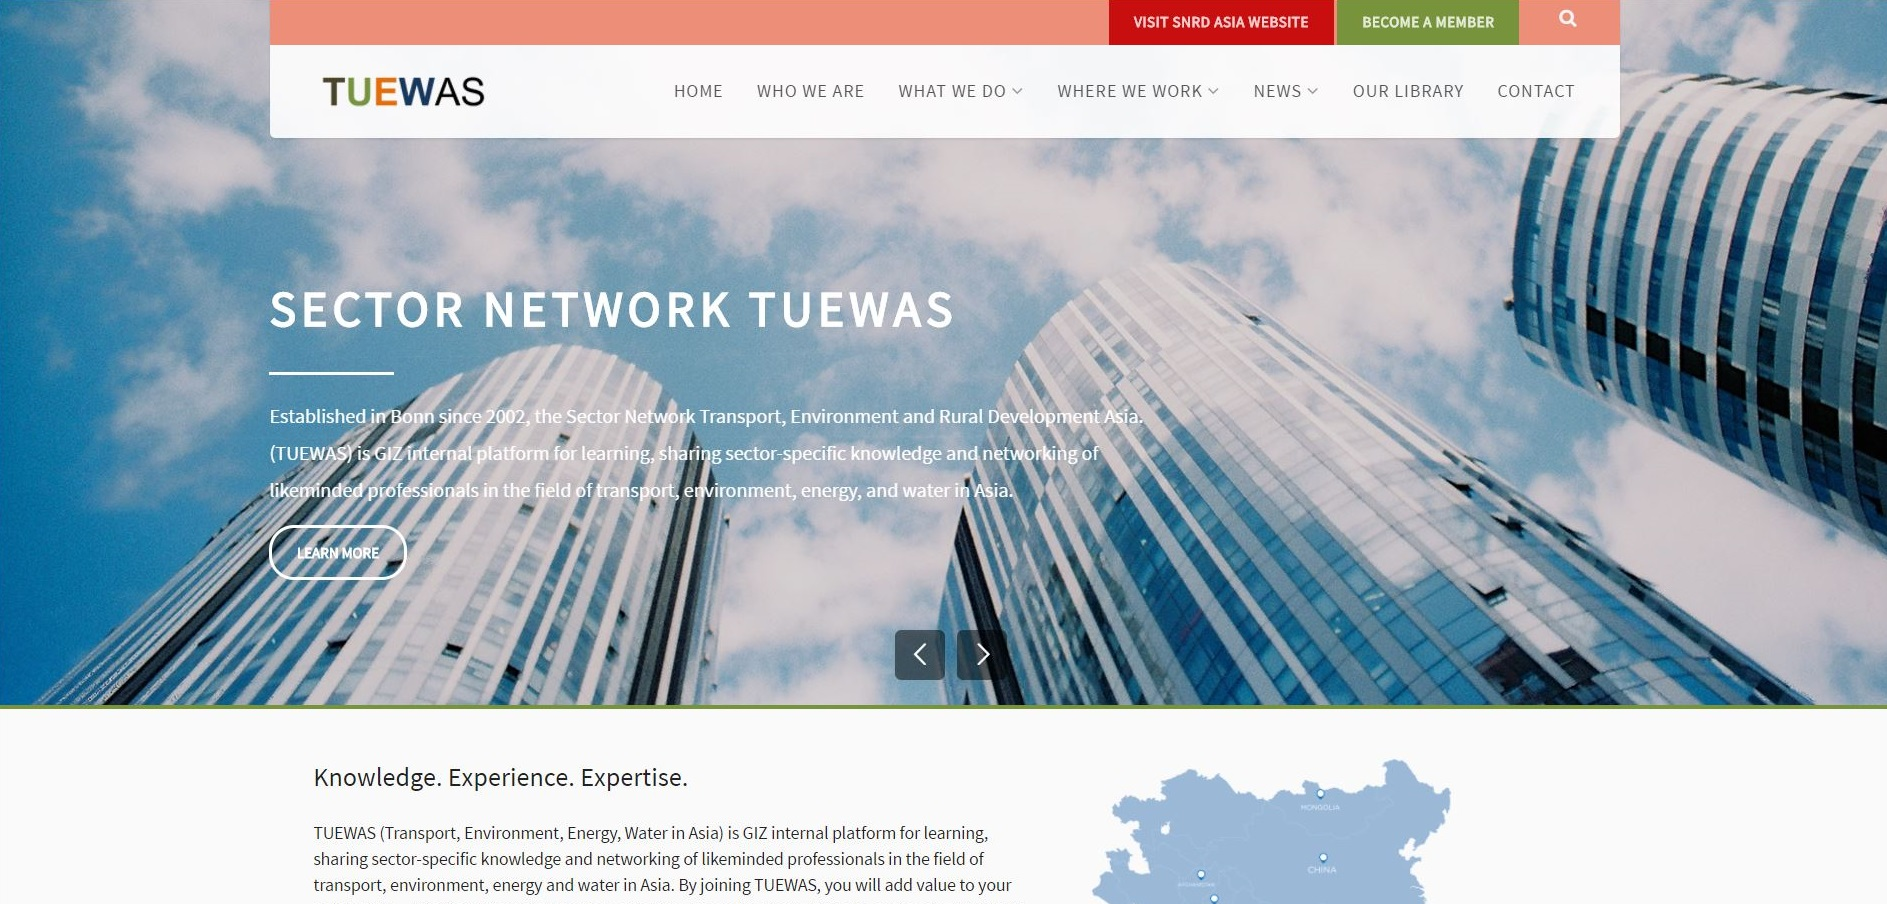 The Sector Network Transport, Environment, Energy and Water in Asia launches new website